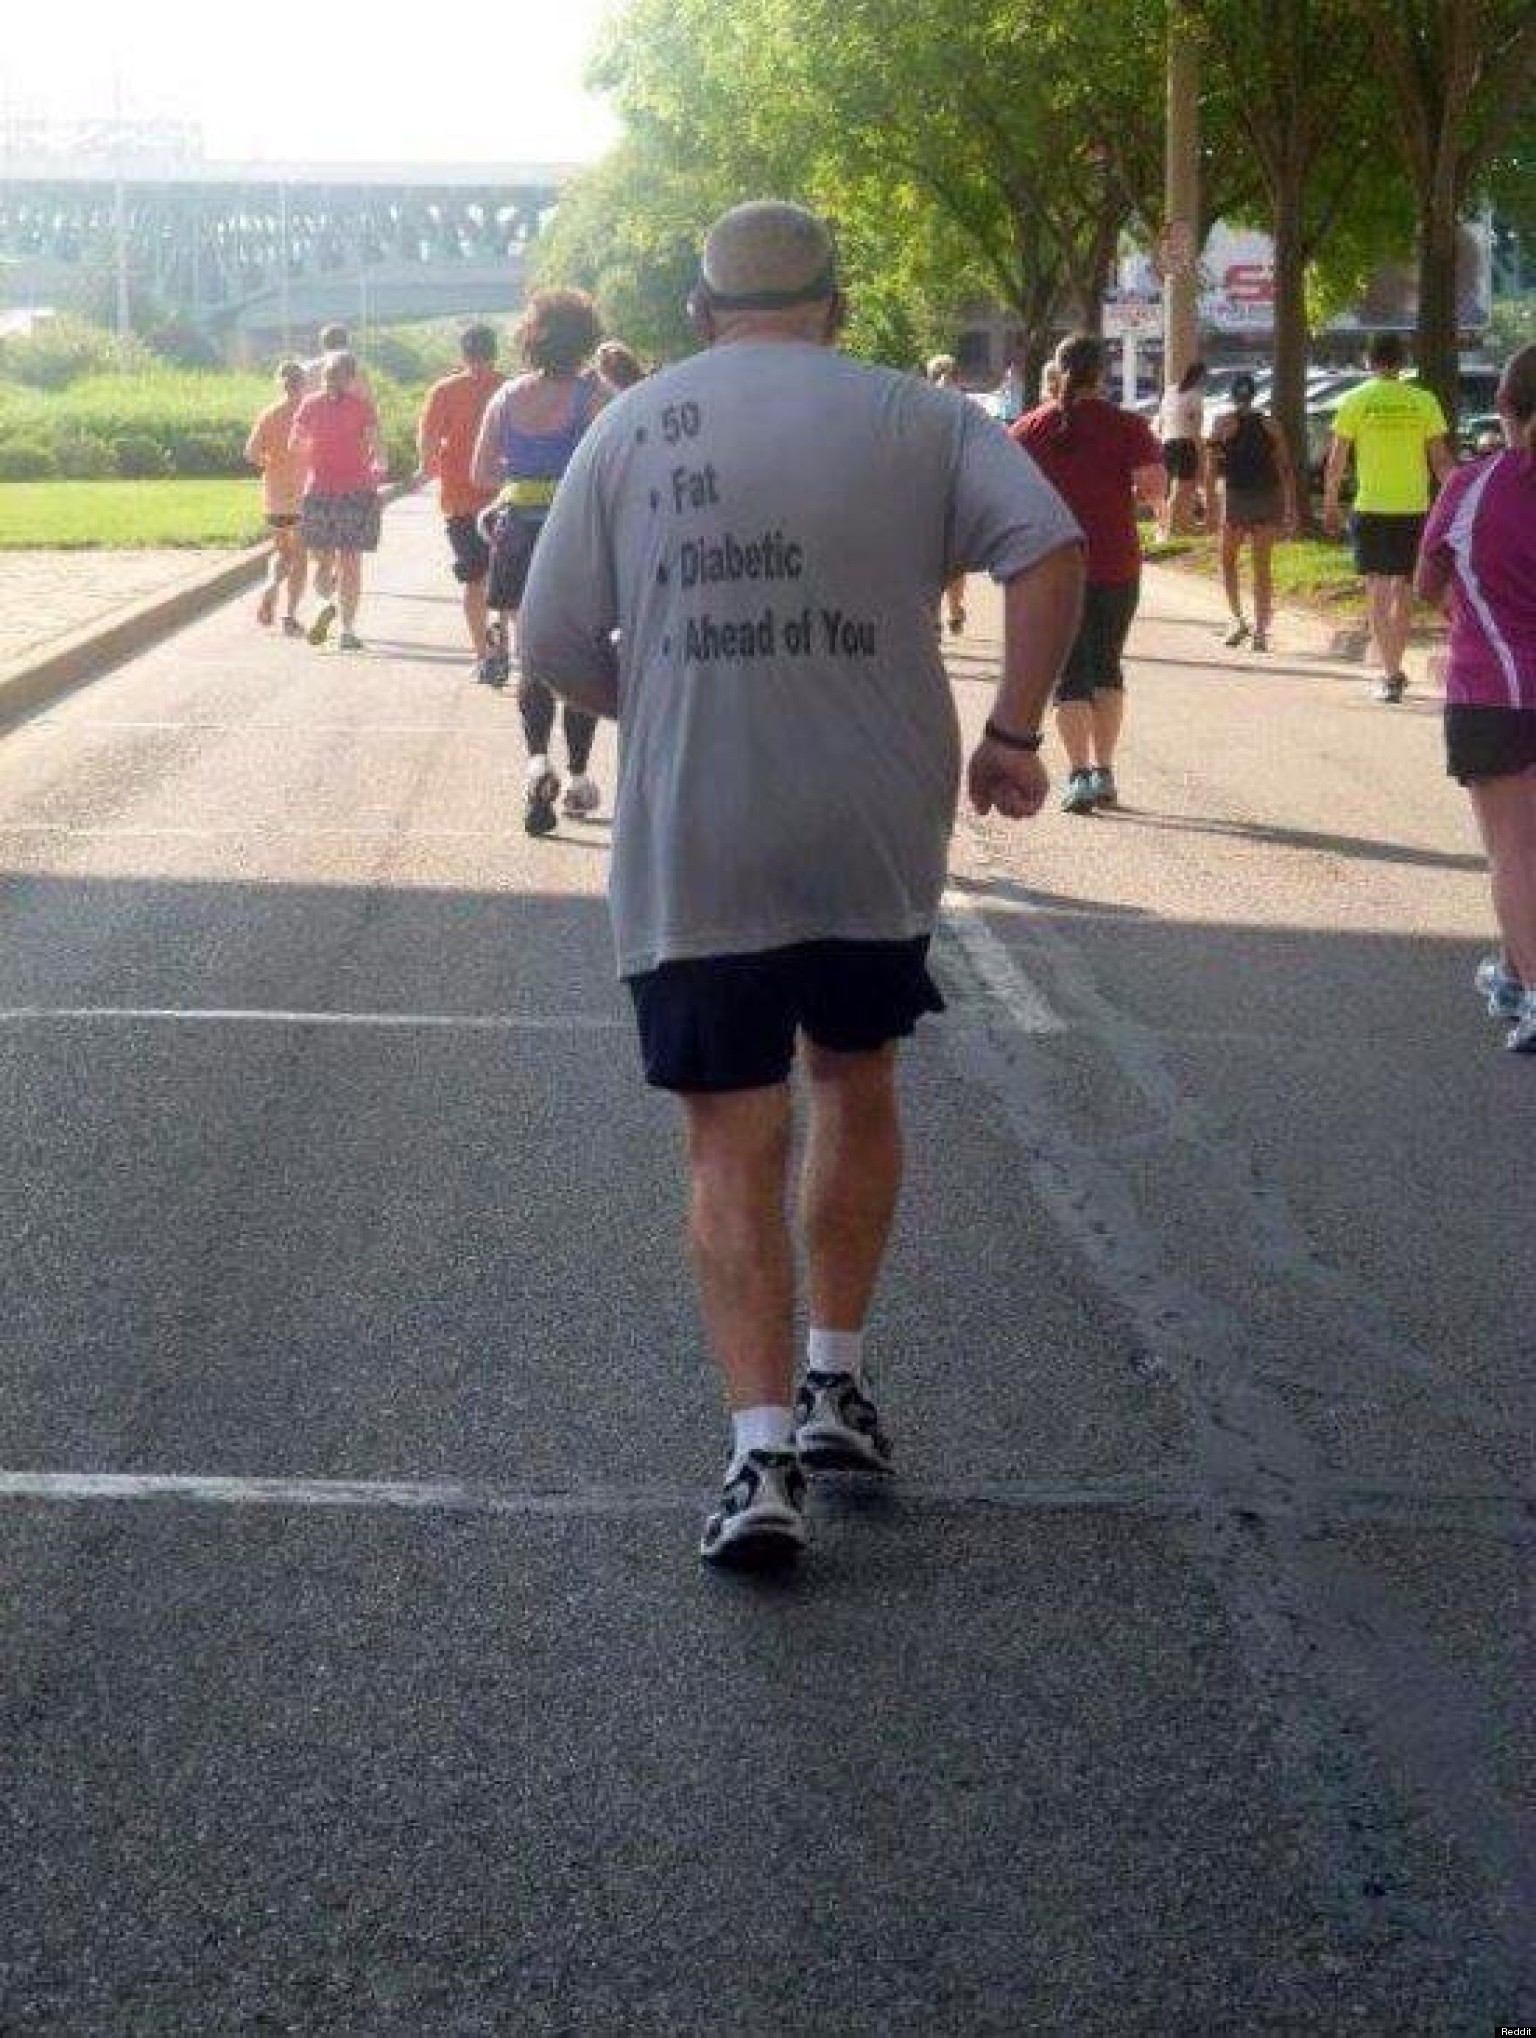 This Runner Has A Message For His Competition...